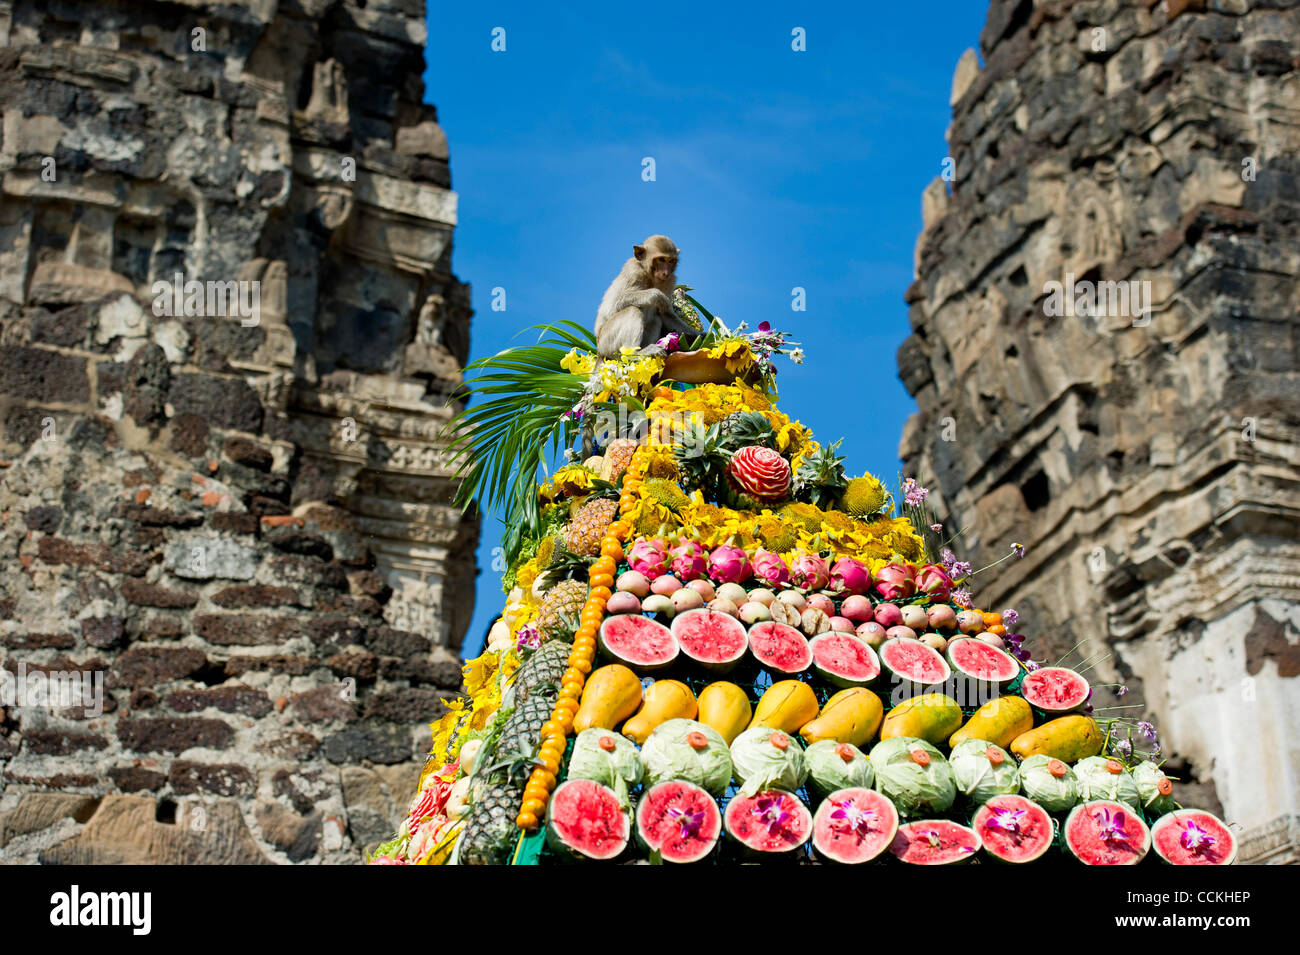 Nov. 28, 2010 - Lopburi, Thailand - A monkey sits on top of a pyramid made of fruit during the annual 'monkey buffet Stock Photo